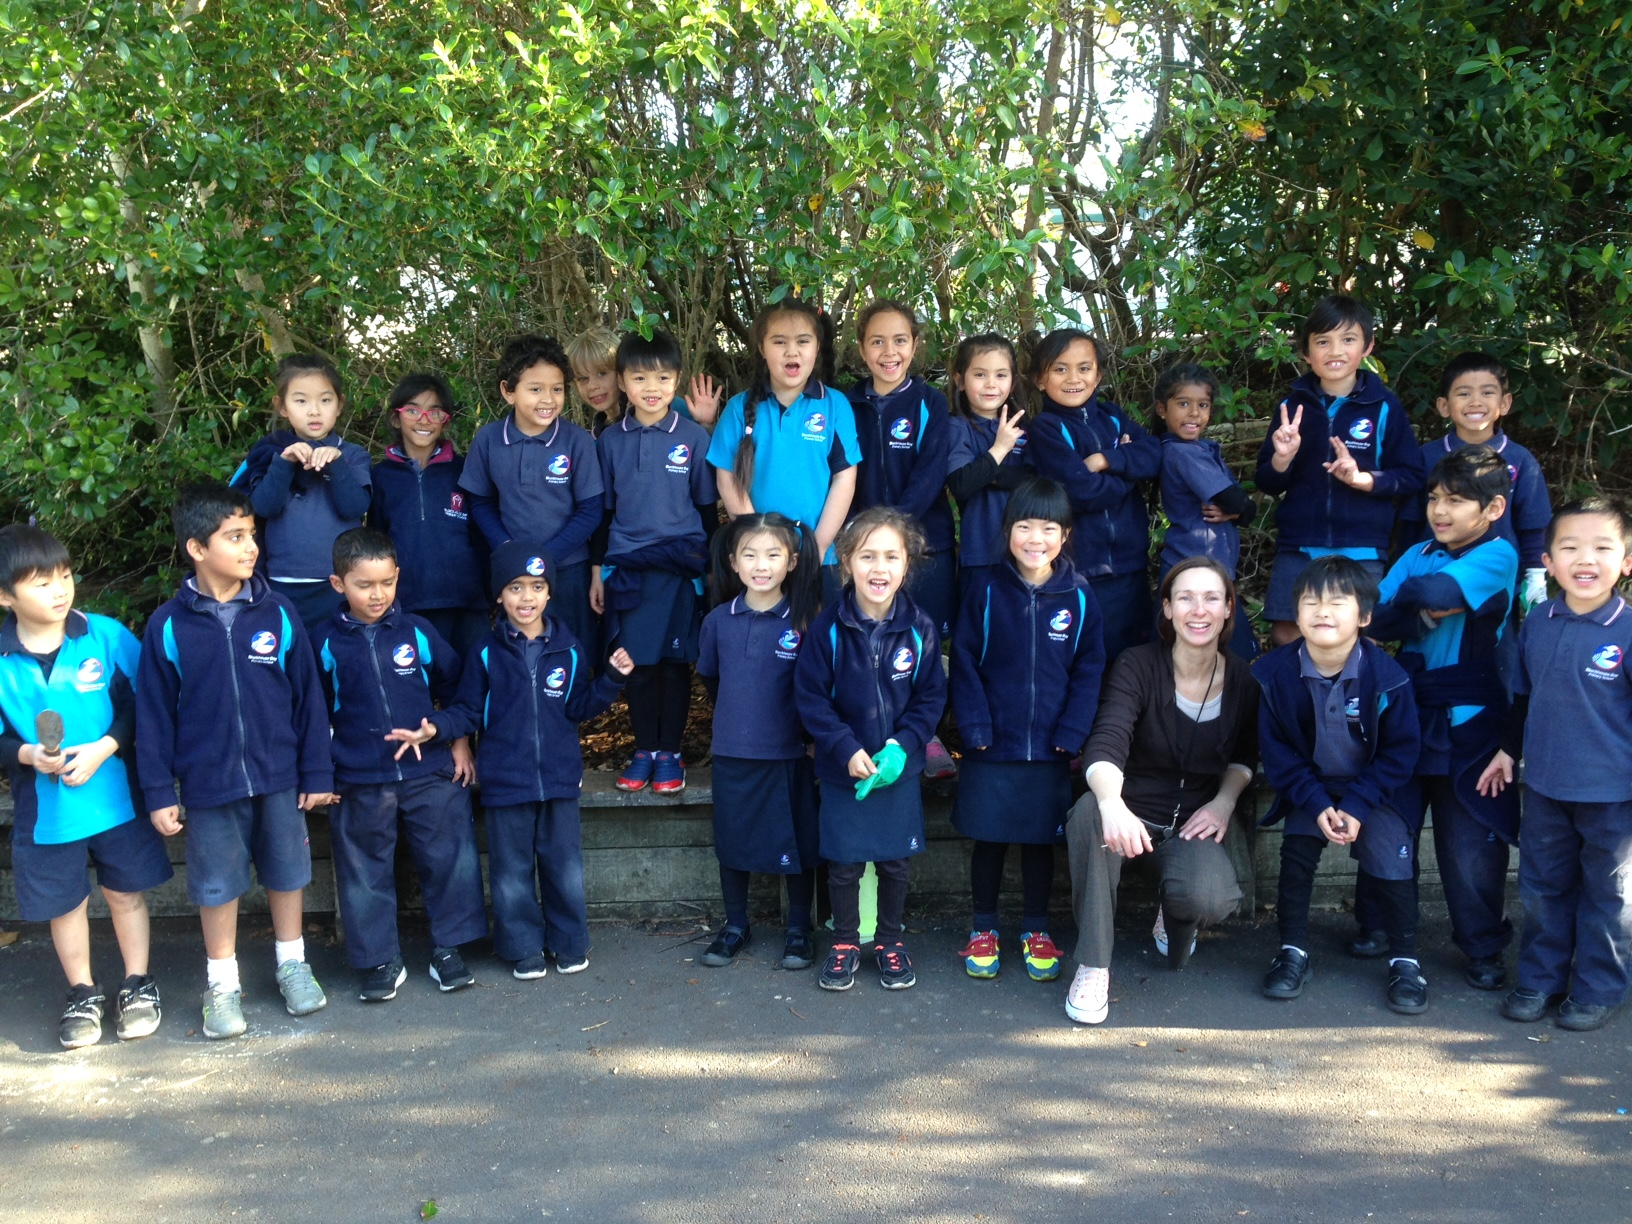 Blockhouse Bay Primary School - Welcome to Term 3 in Room 23